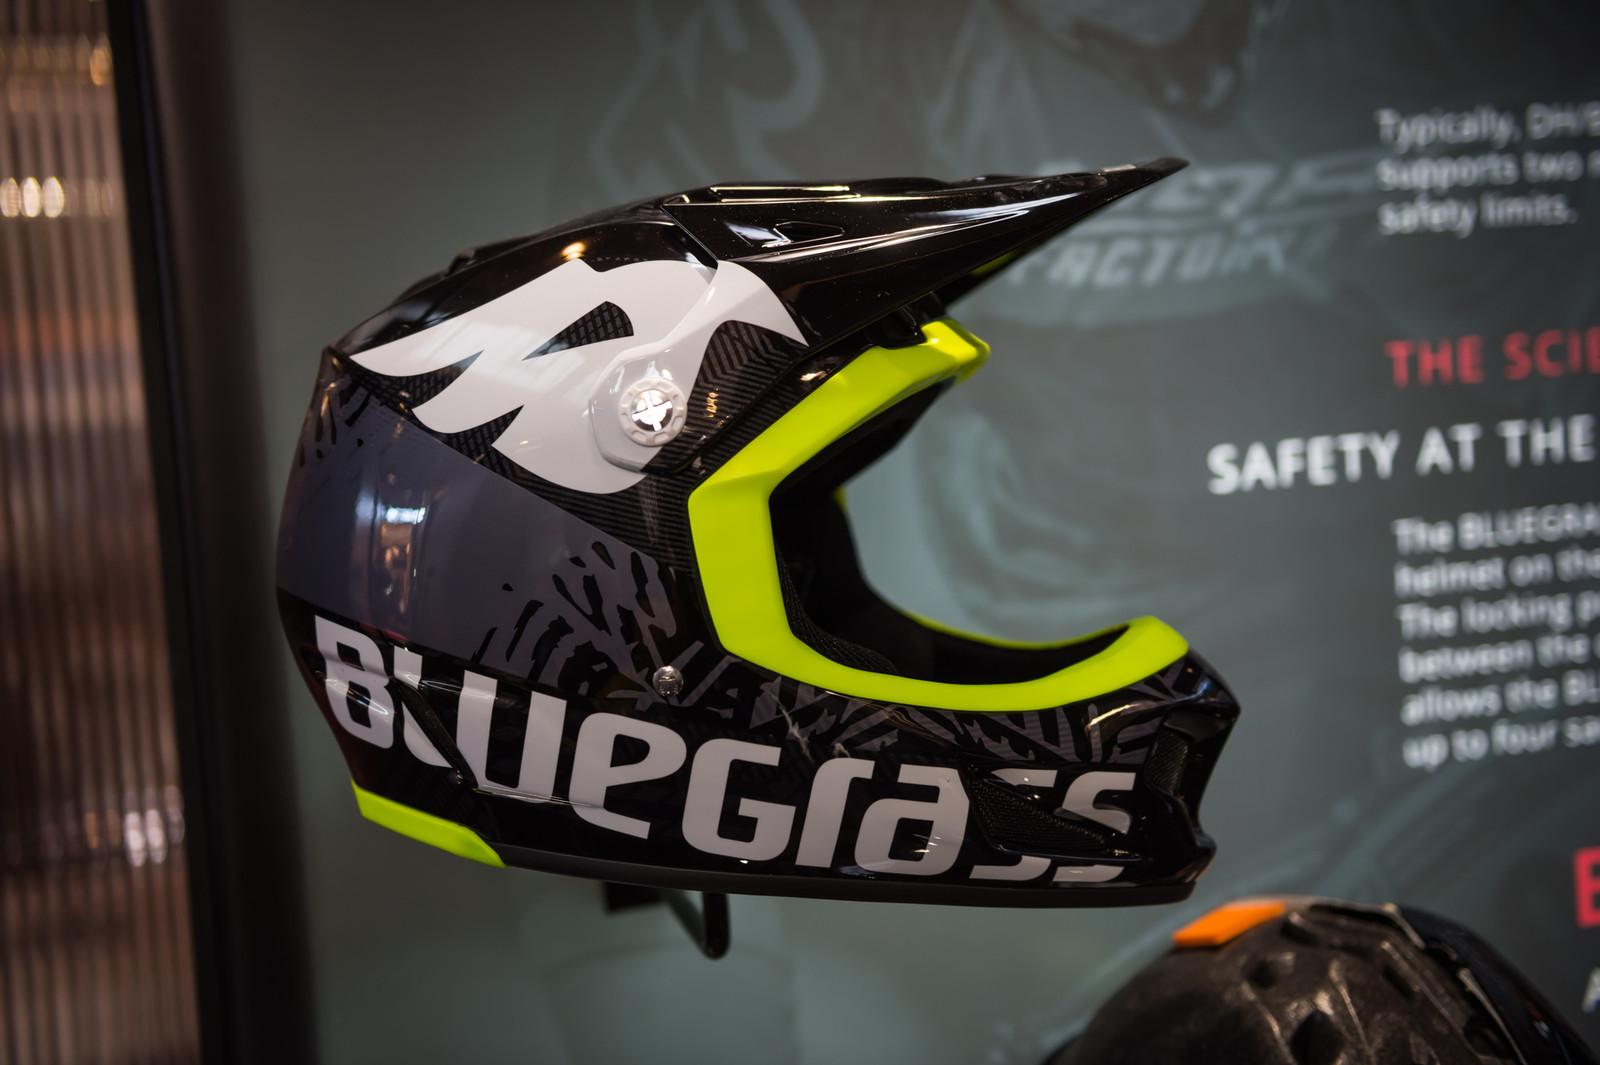 Bluegrass Brave Full Face Helmet - EUROBIKE - 2017 Mountain Bike Apparel and Protective Gear - Mountain Biking Pictures - Vital MTB